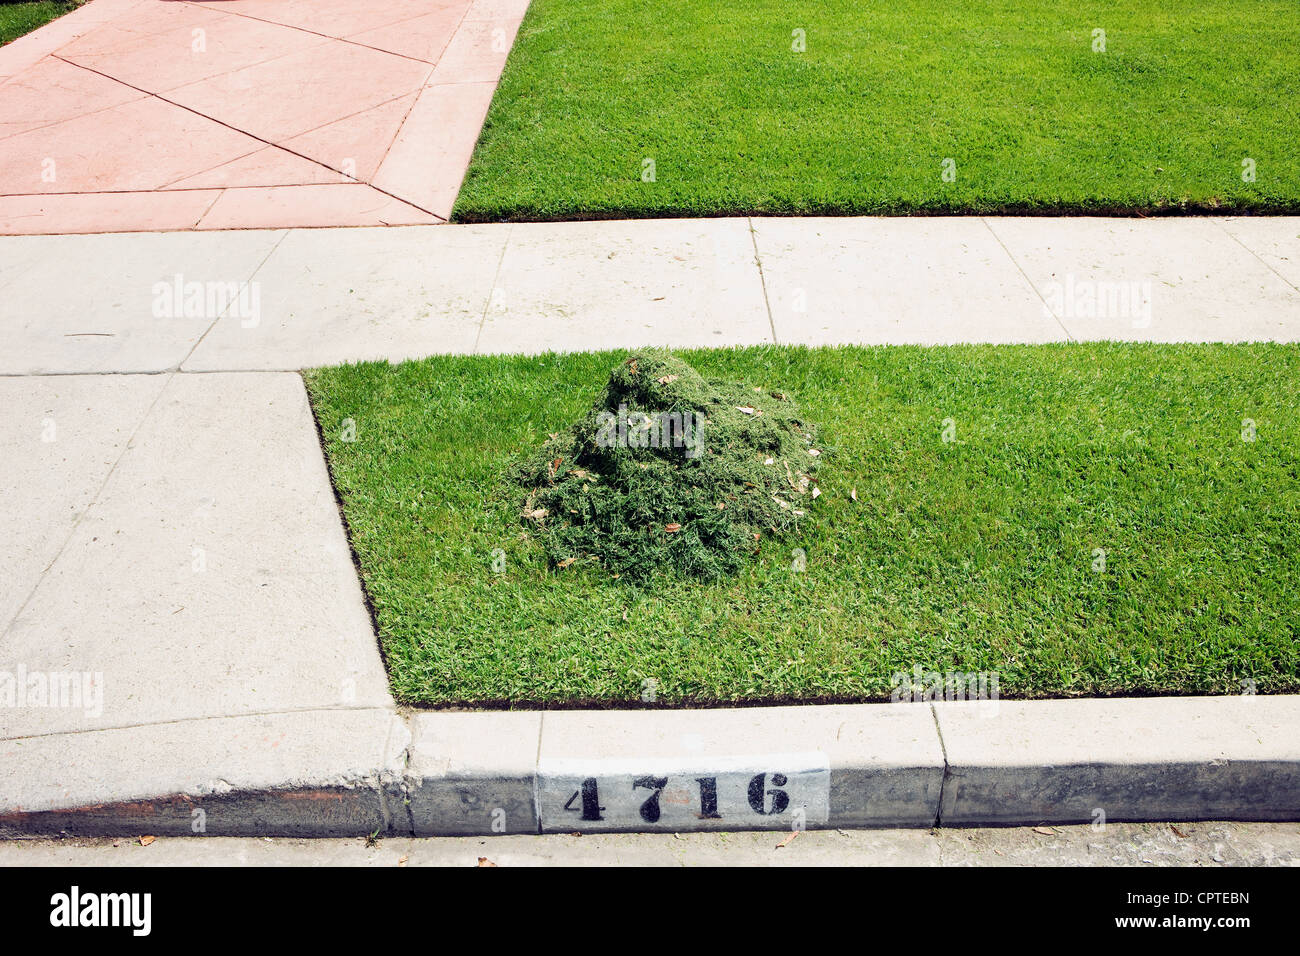 Heap of cut grass on suburban pavement - Stock Image